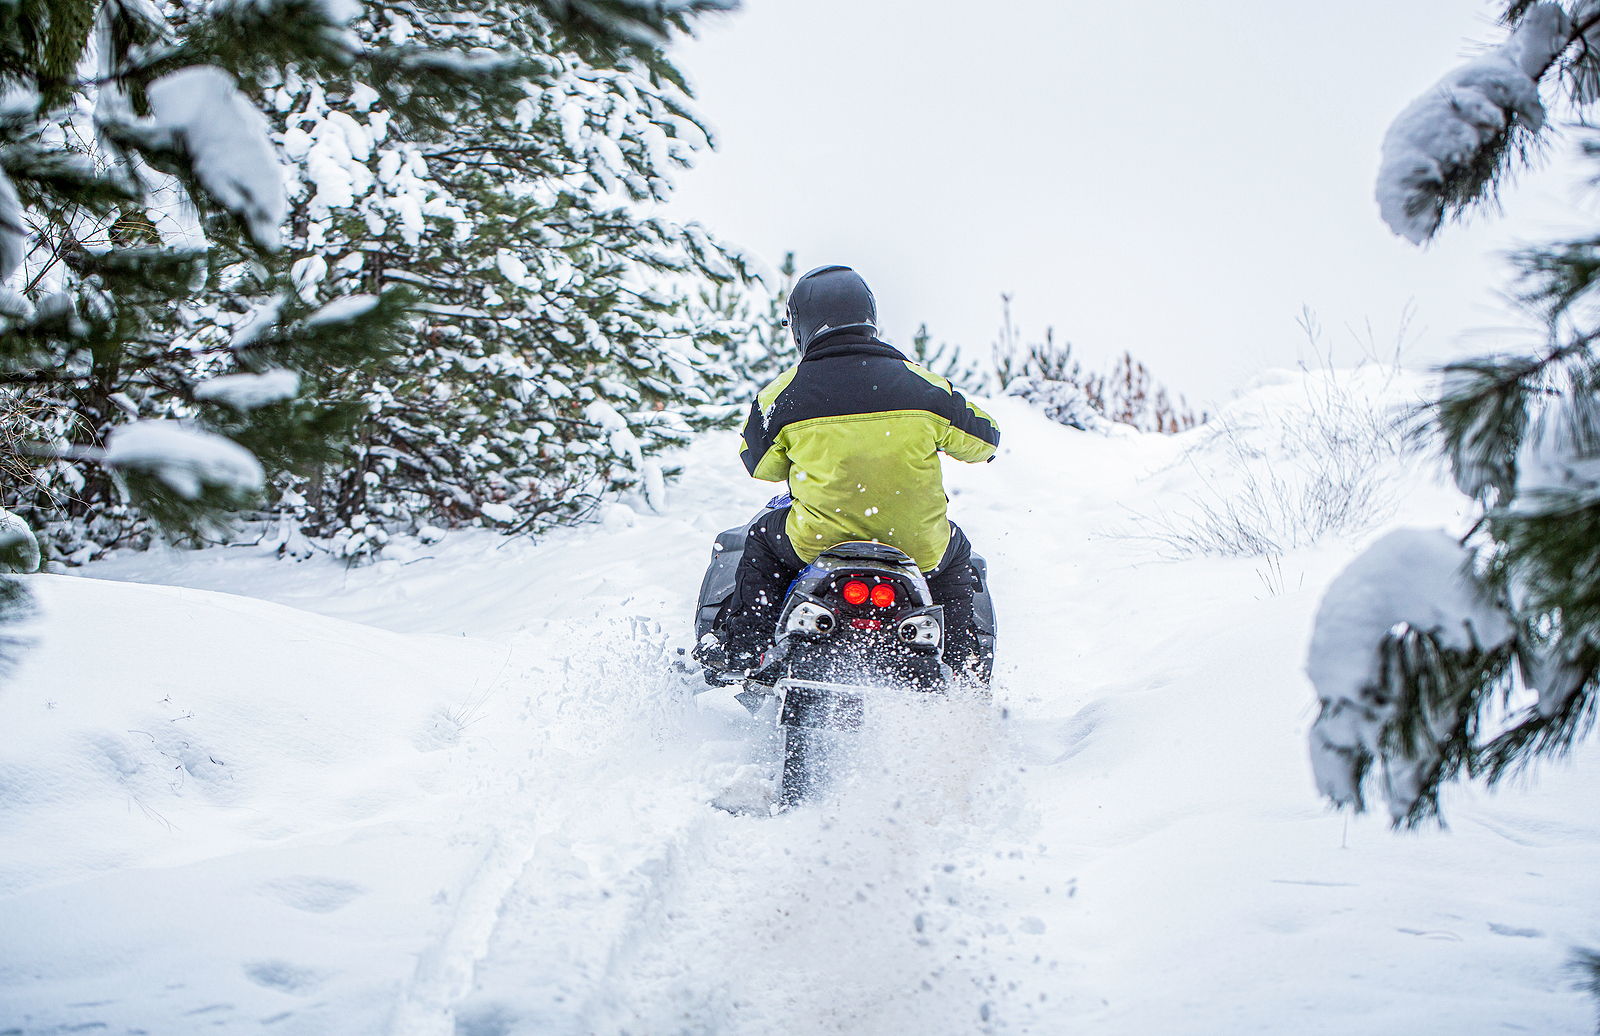 snowmobile accident attorney Halifax